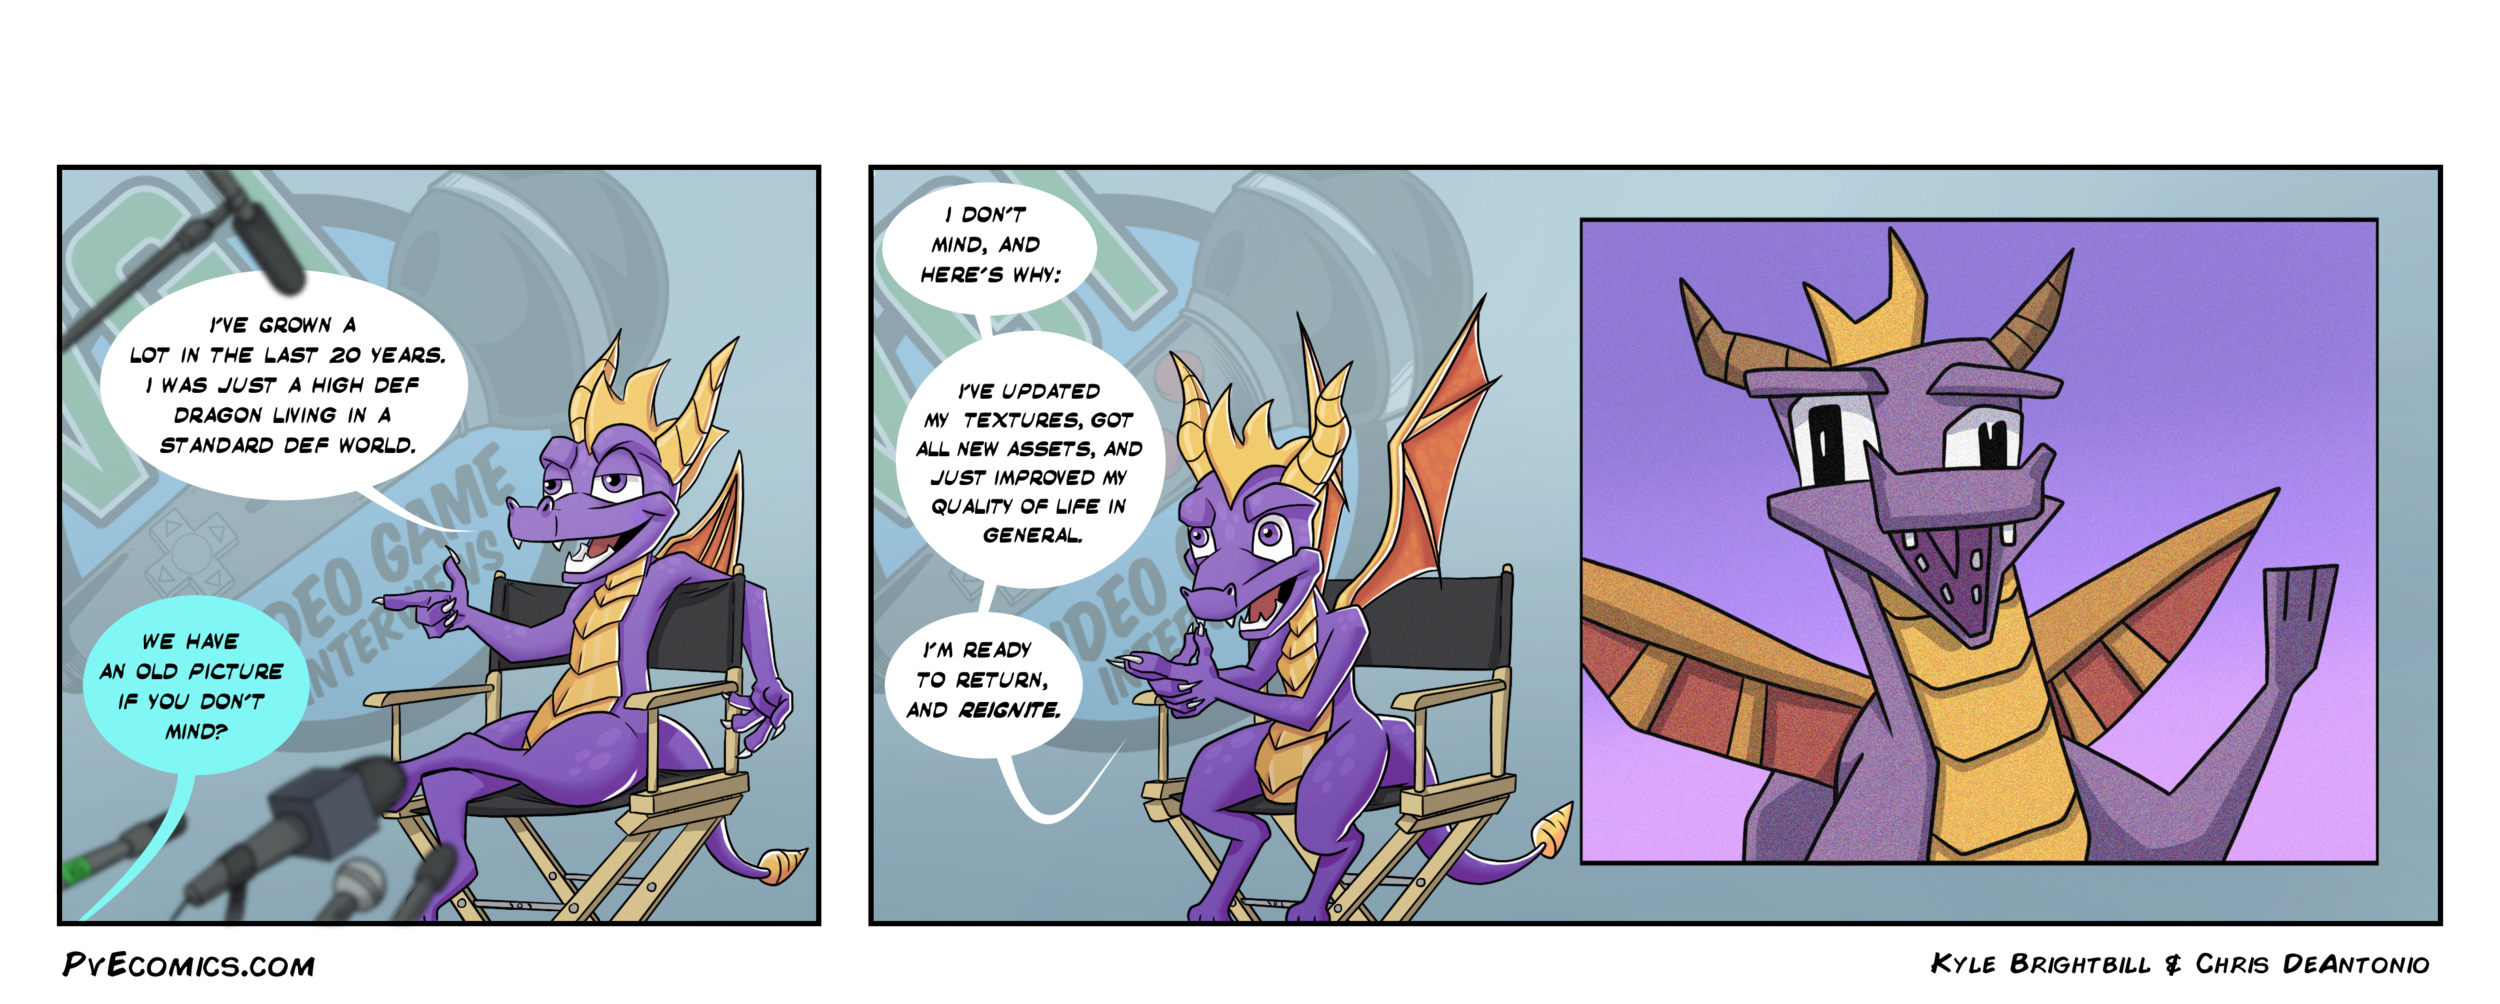 PvE 52 Spyro Reignited.png